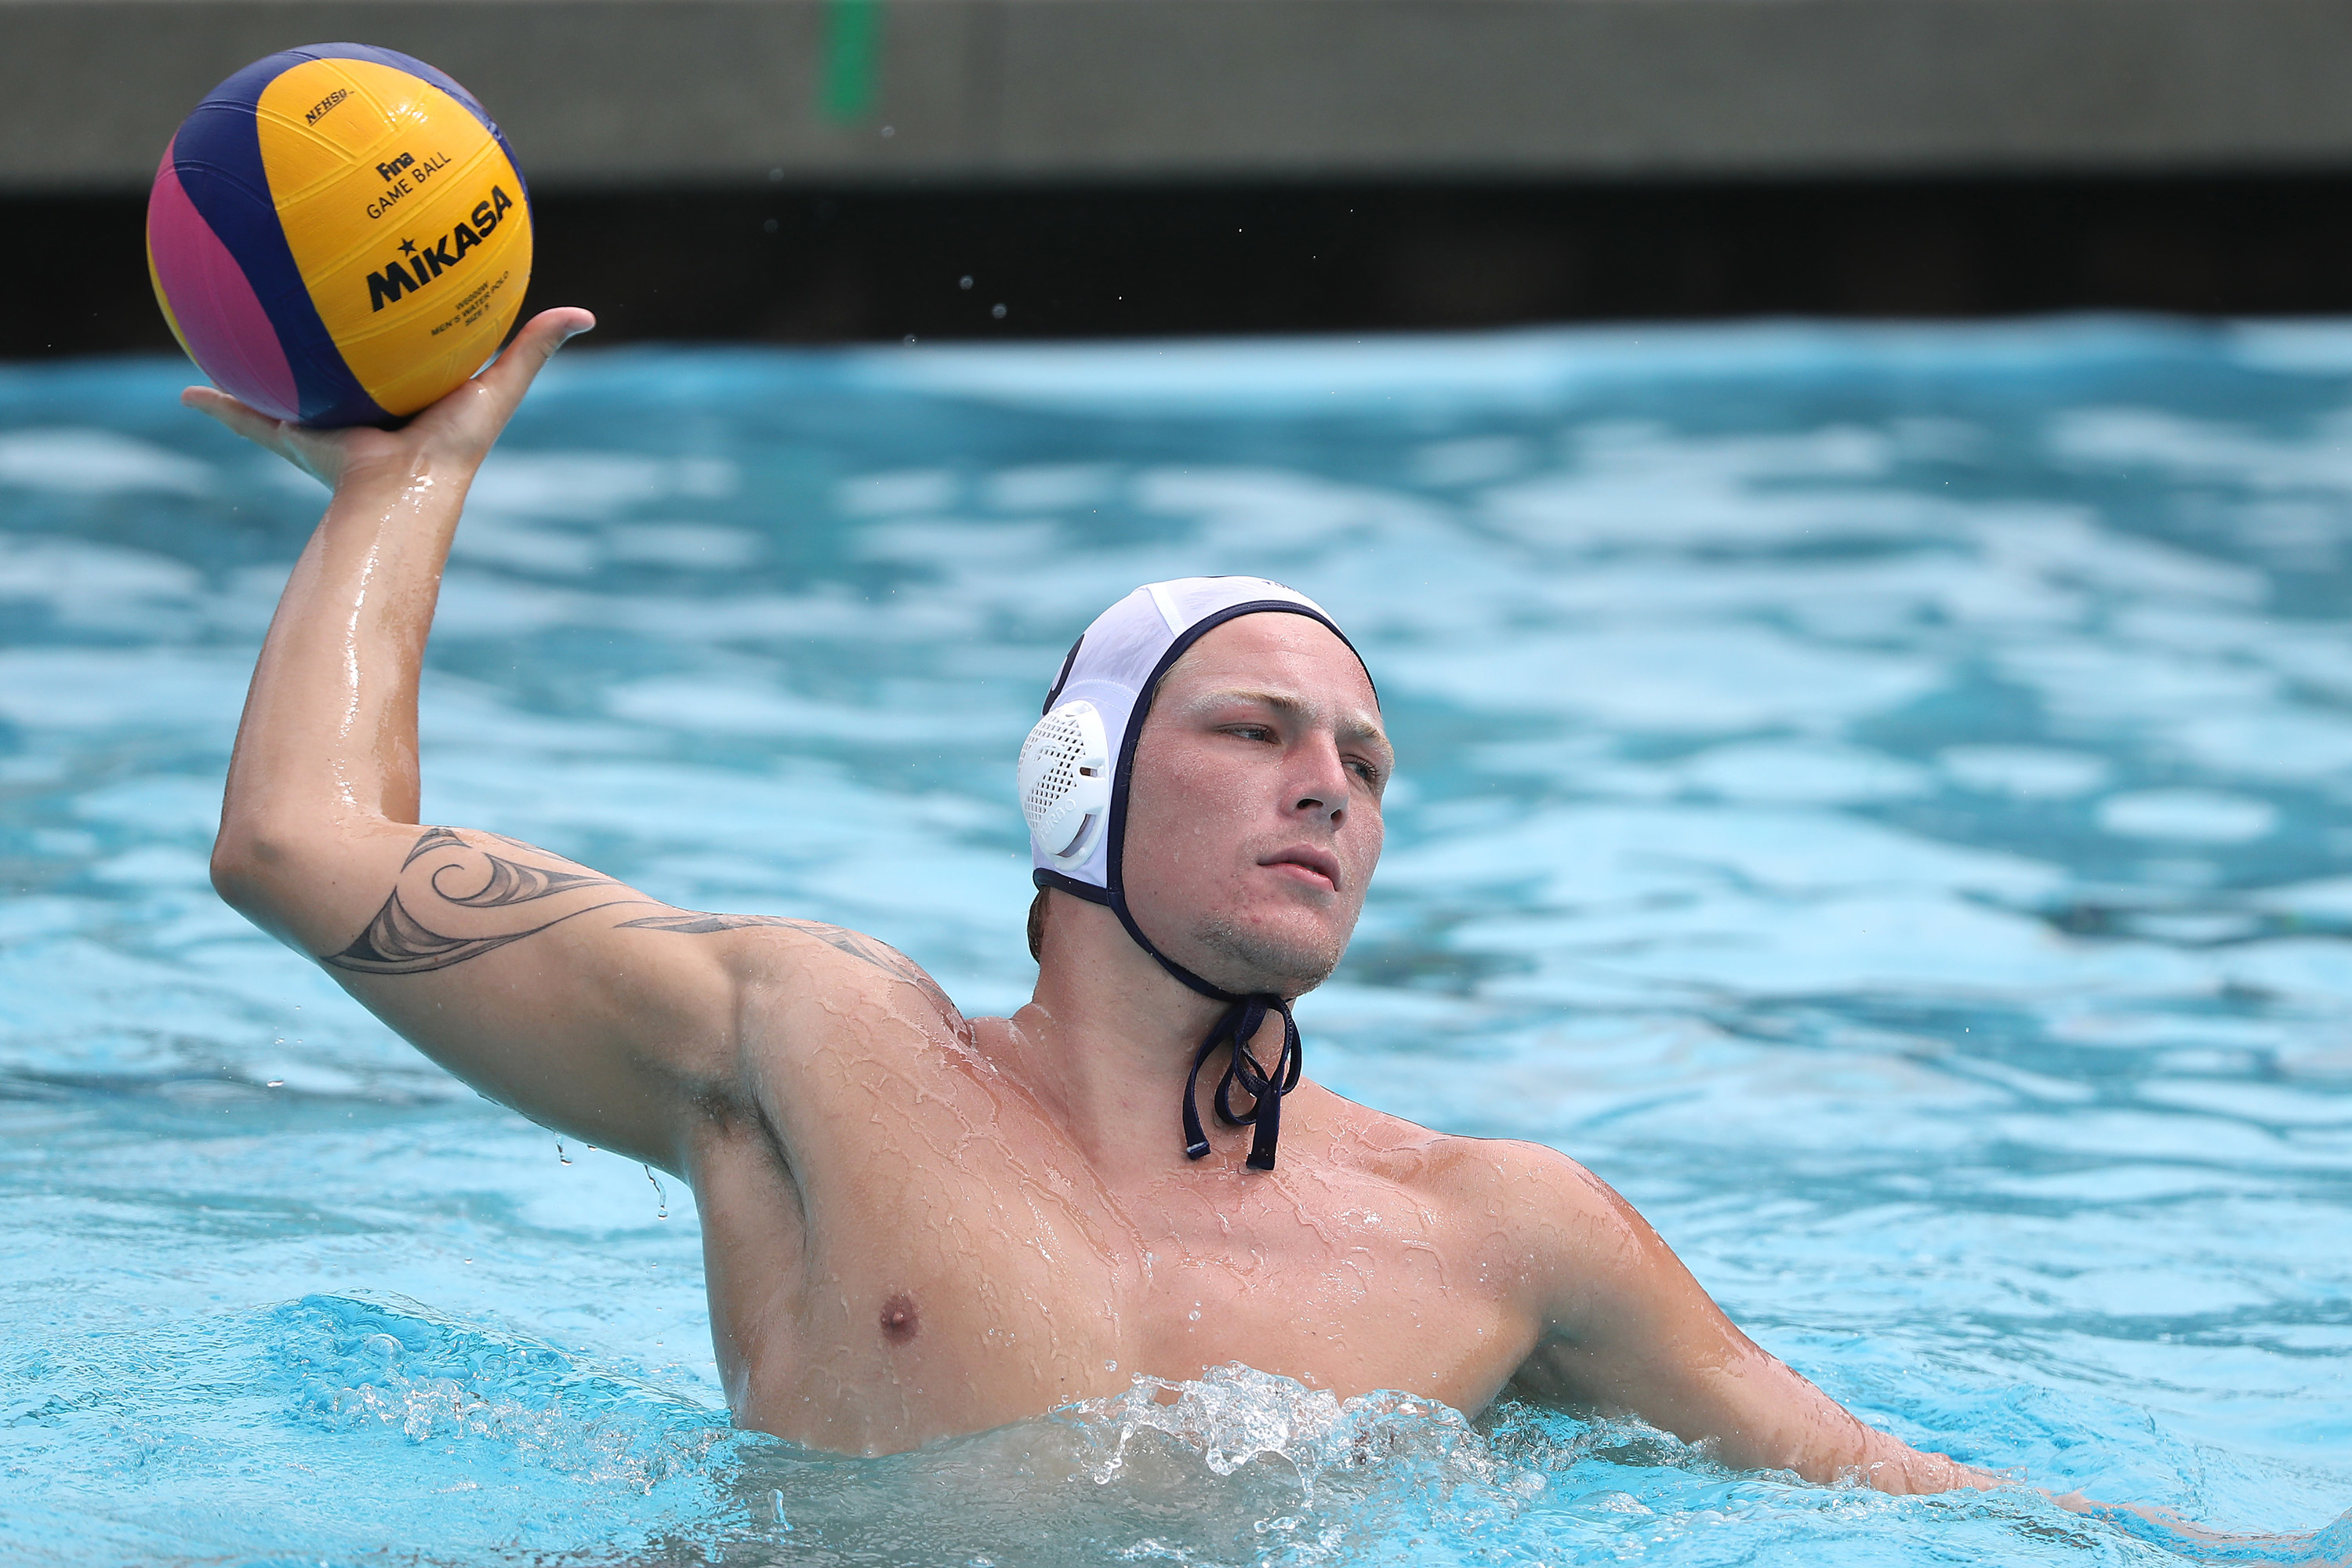 Water polo player throws ball